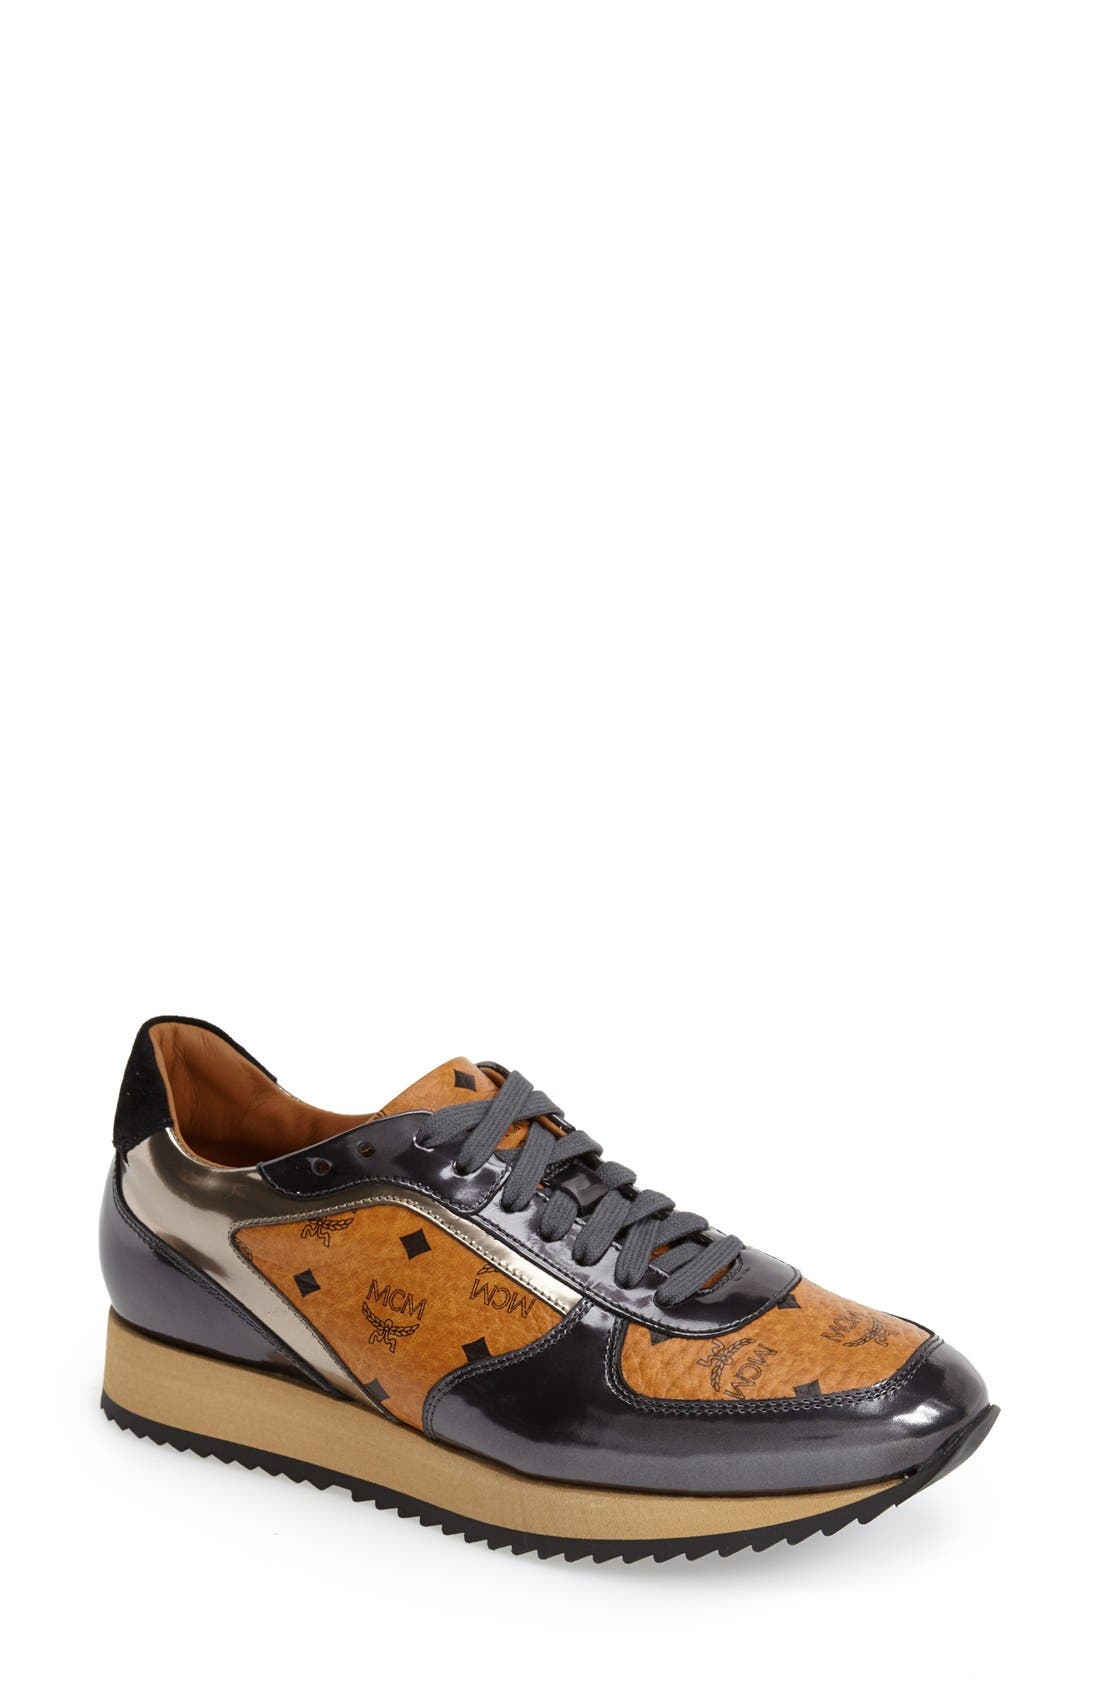 Main Image - MCM Coated Canvas & Leather Trainer (Women)